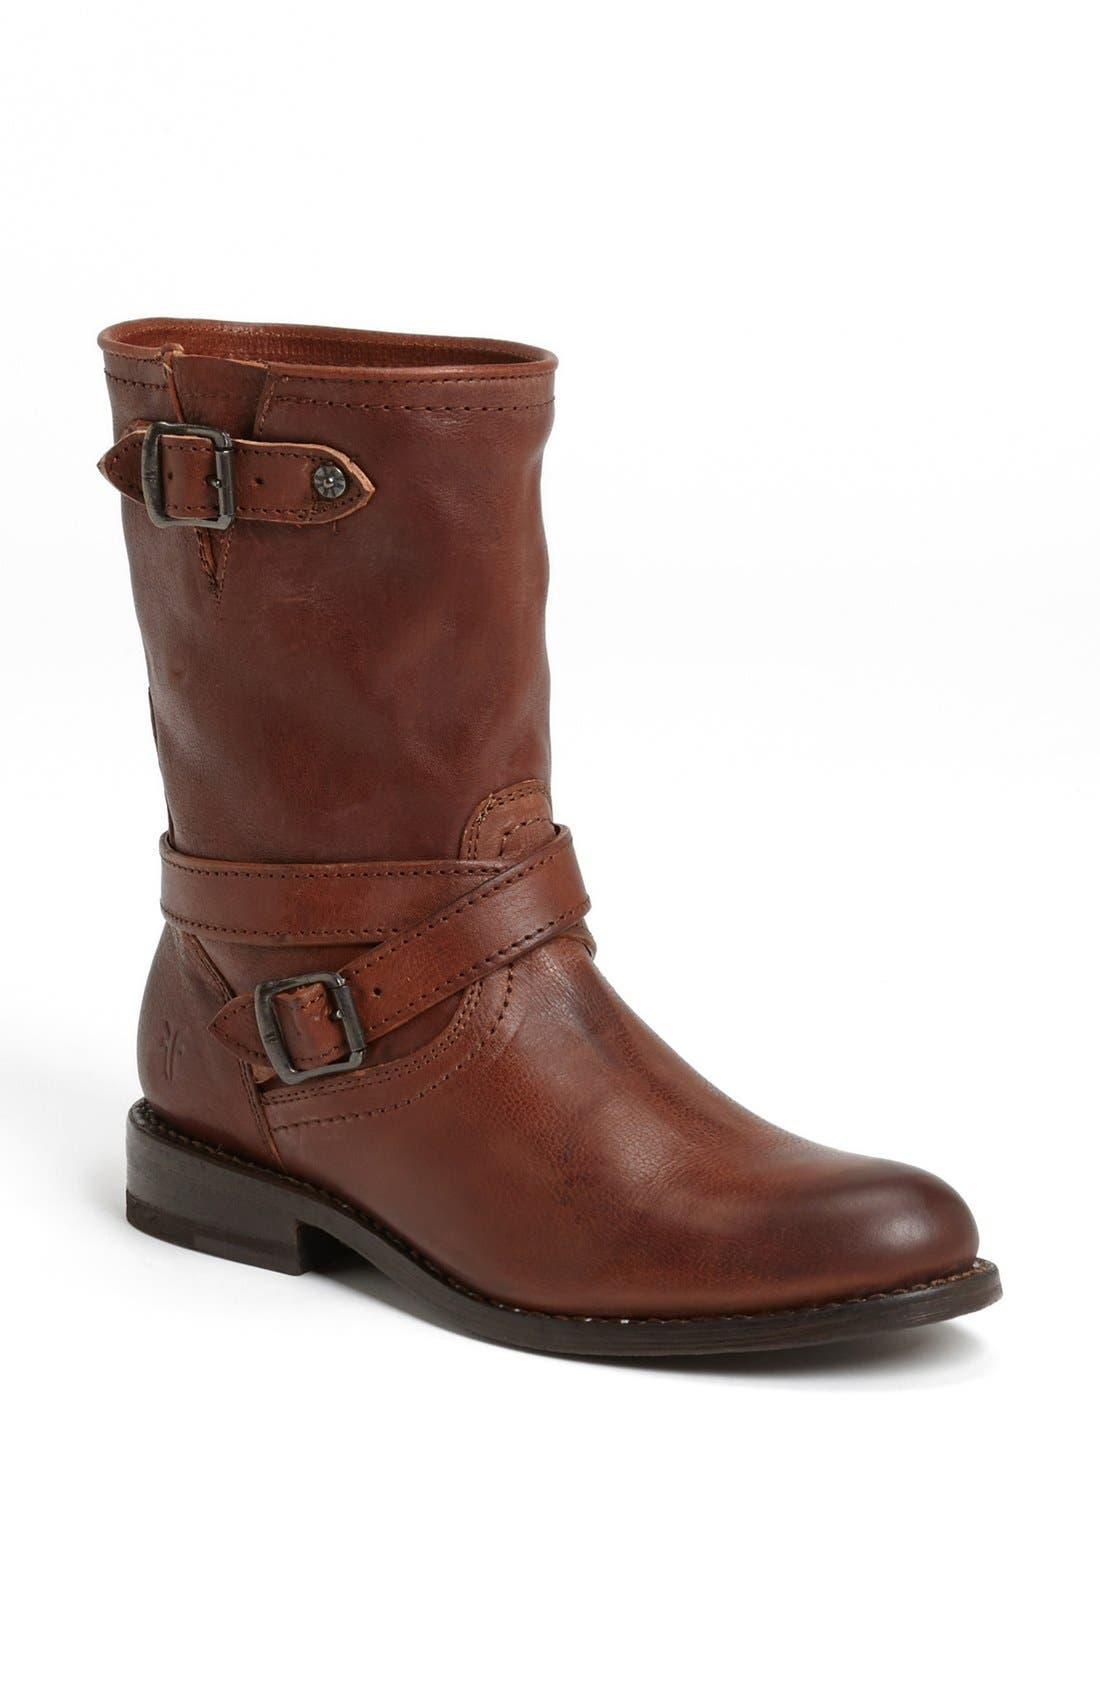 Alternate Image 1 Selected - Frye 'Jayden Cross Engineer' Leather Boot